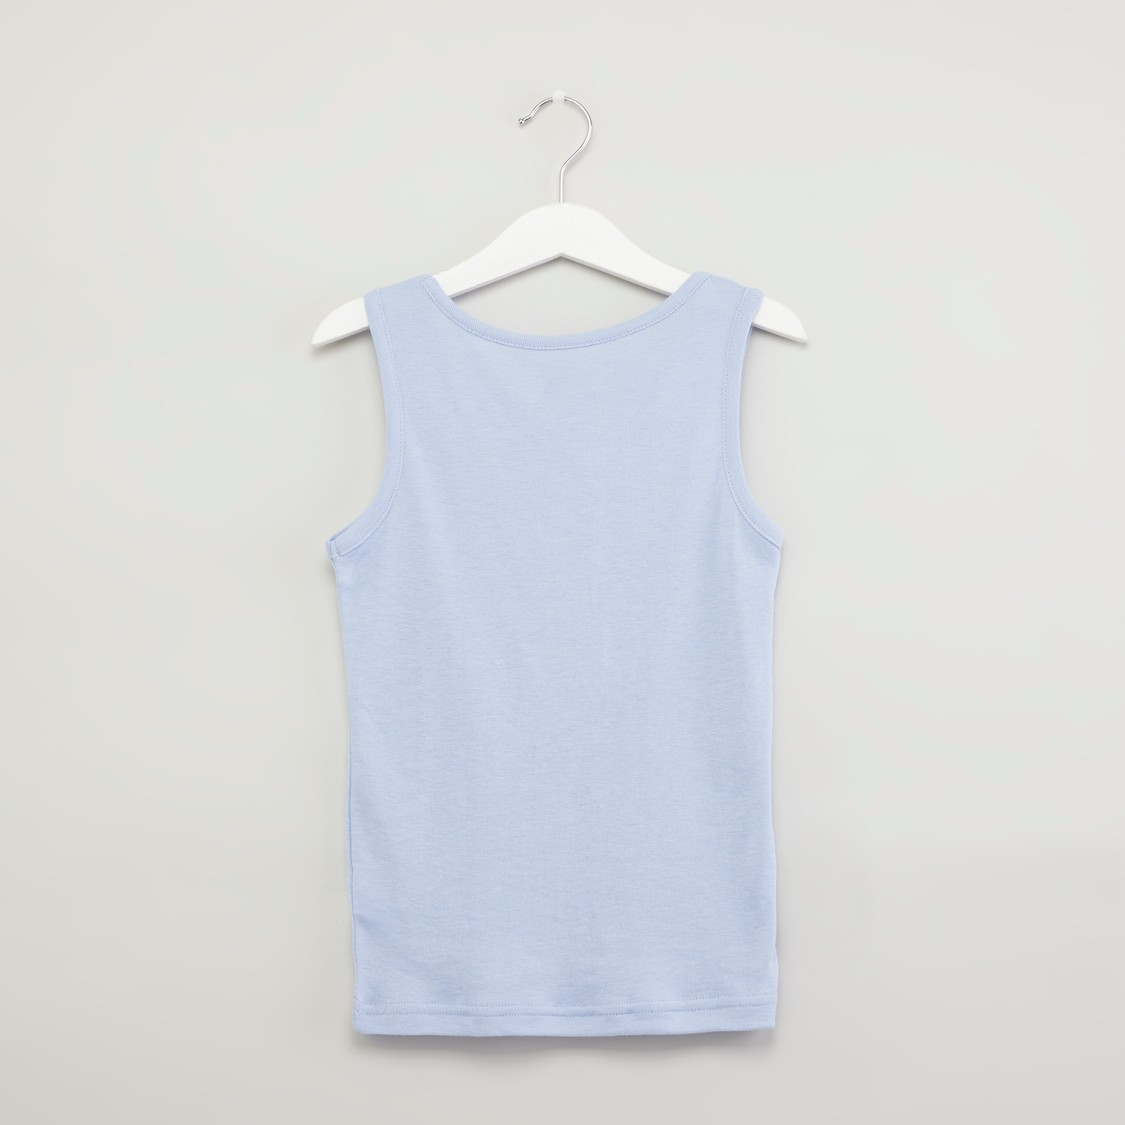 Set of 2 - Plain Sleeveless Vests with Round Neck